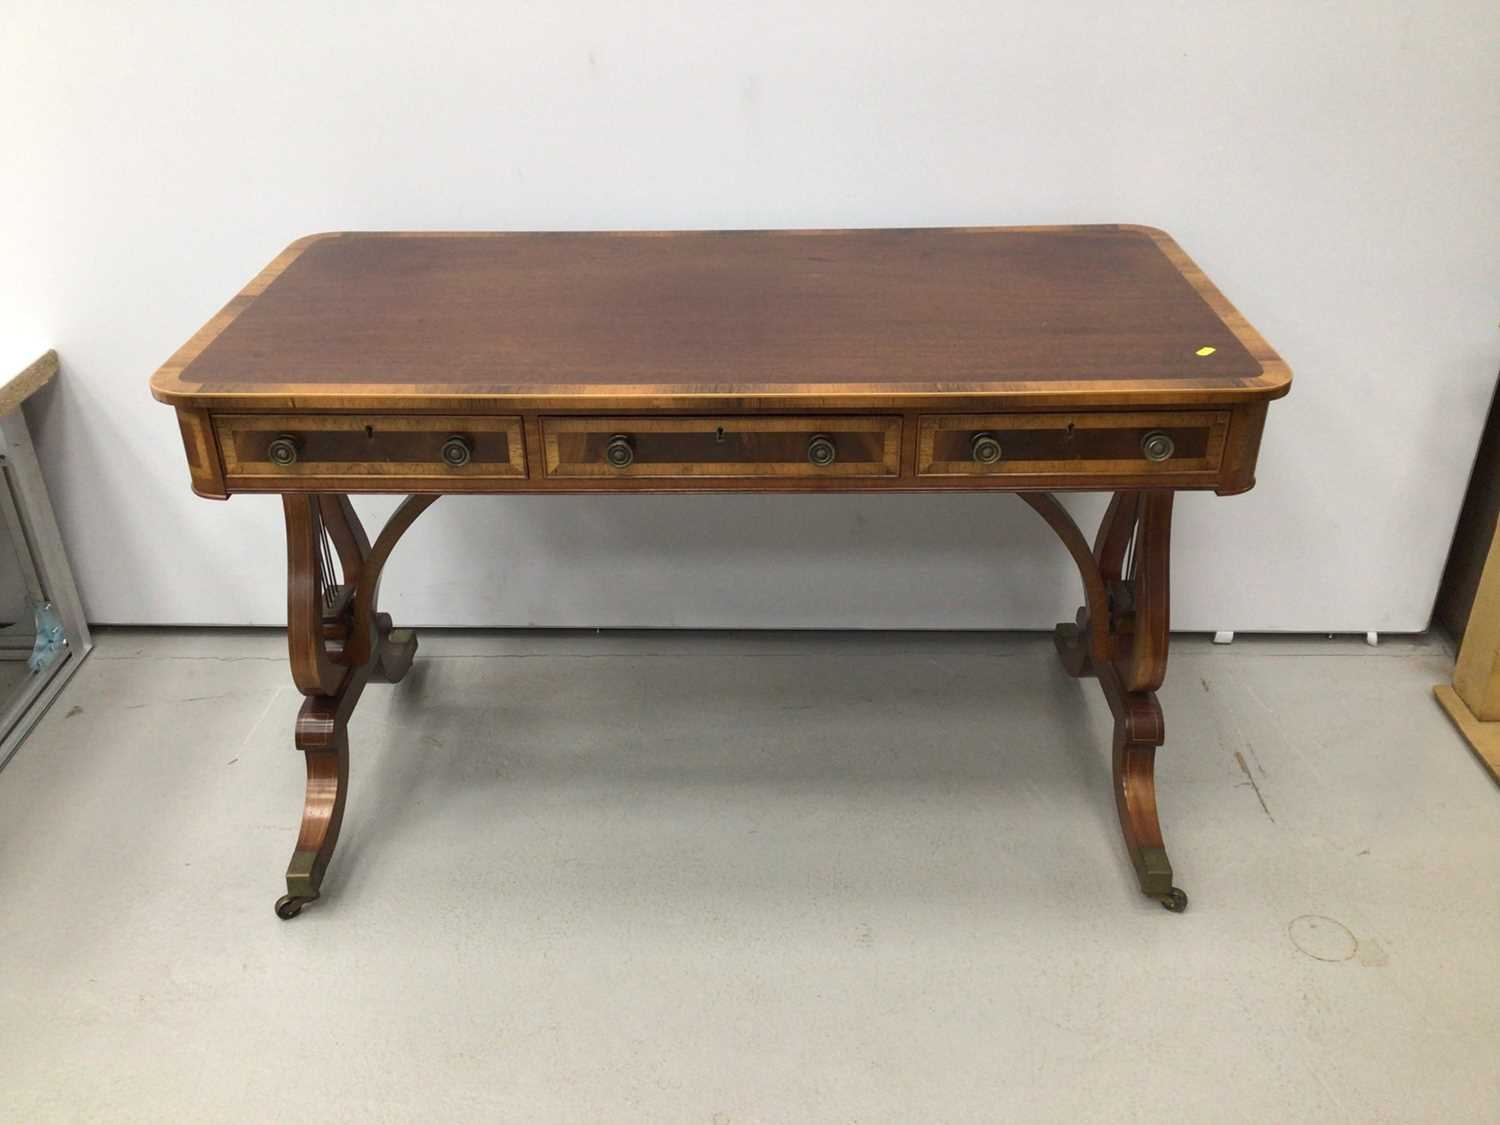 Lot 72 - Good quality Redman and Hales Georgian style mahogany writing table with cross banded decoration and three draws on lyre end standards 122cm wide x 61cm deep x 74.5cm high